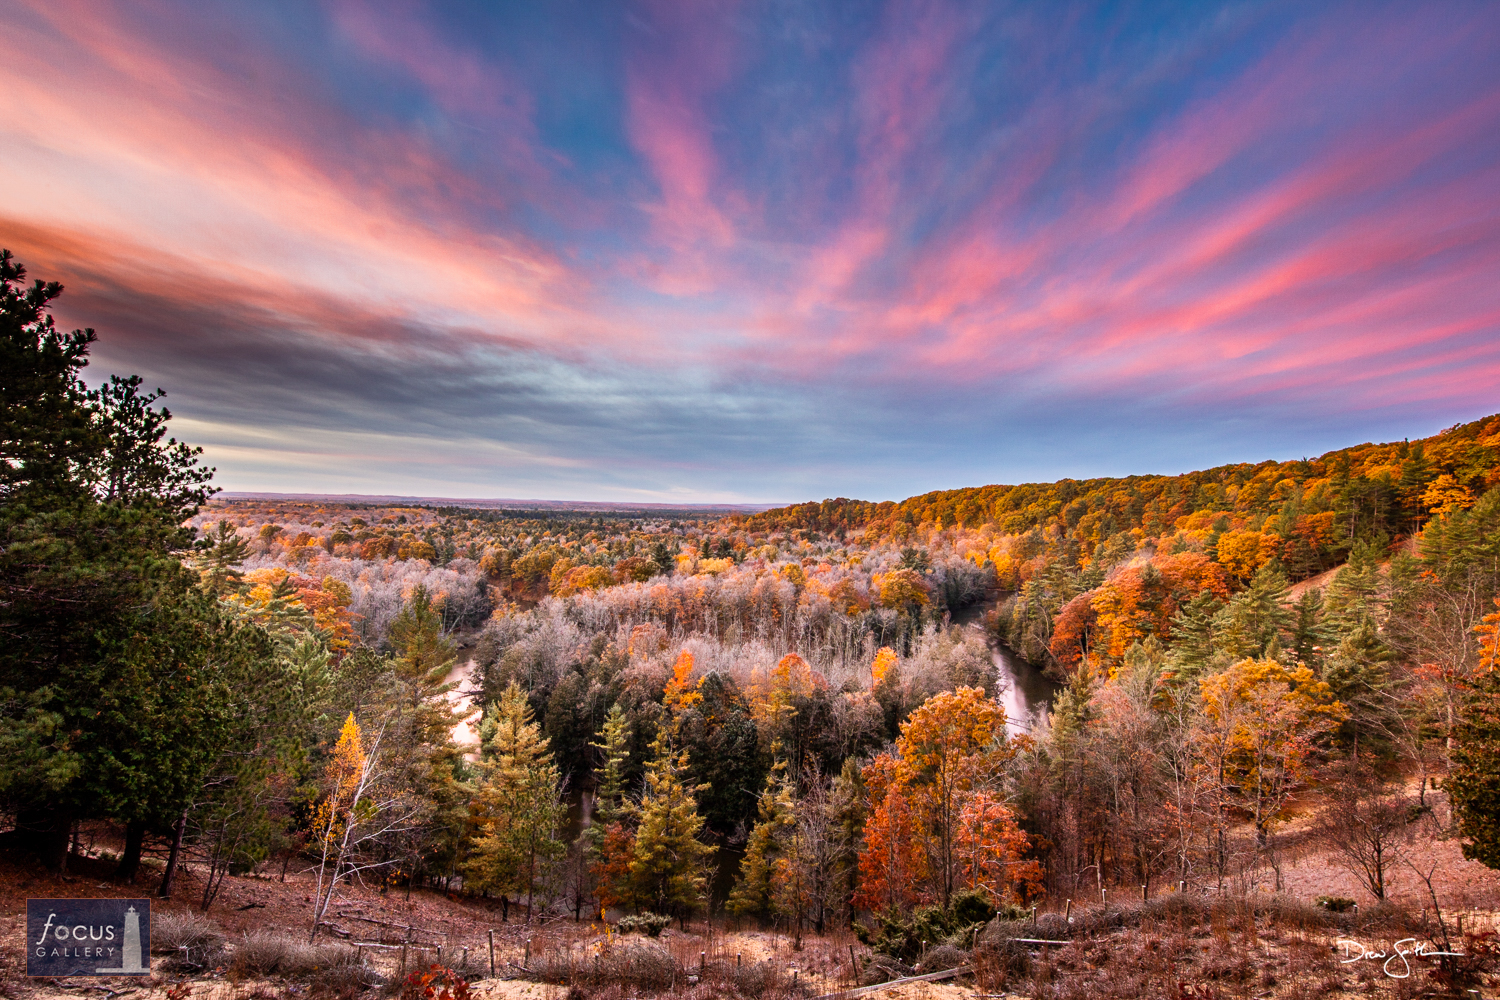 Photo © Drew Smith The Manistee River High Banks Rollaway is a scenic overlook in Manistee County located along the North Country...